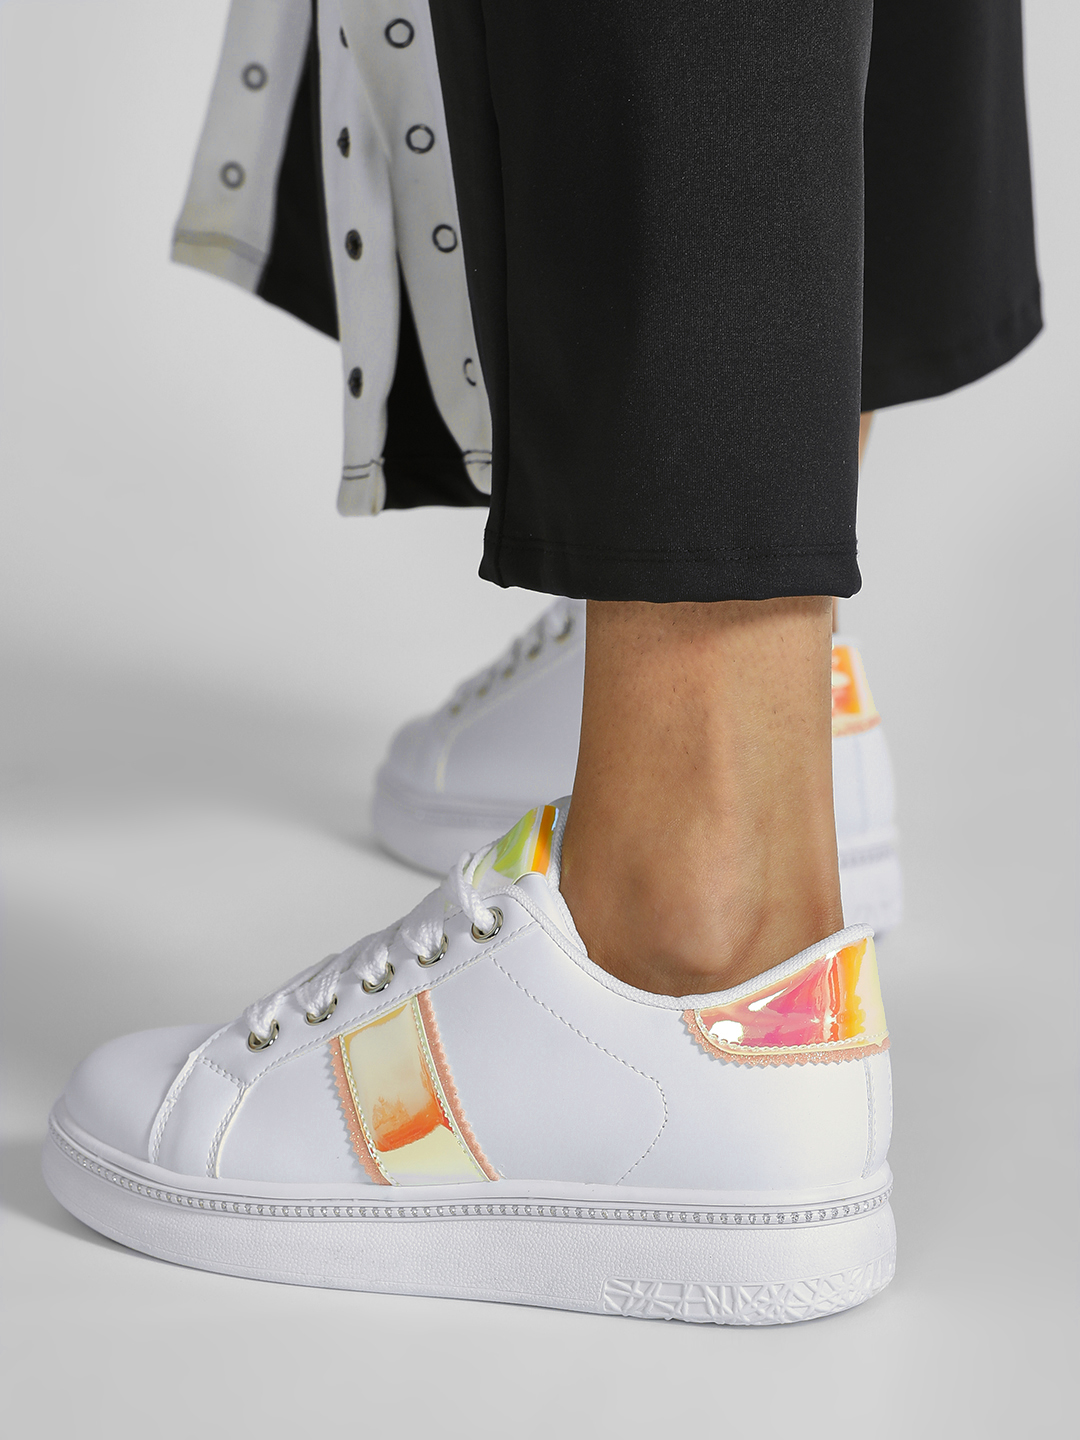 Core Shoes WHITE PINK Embellished Holographic Detail Sneakers 1